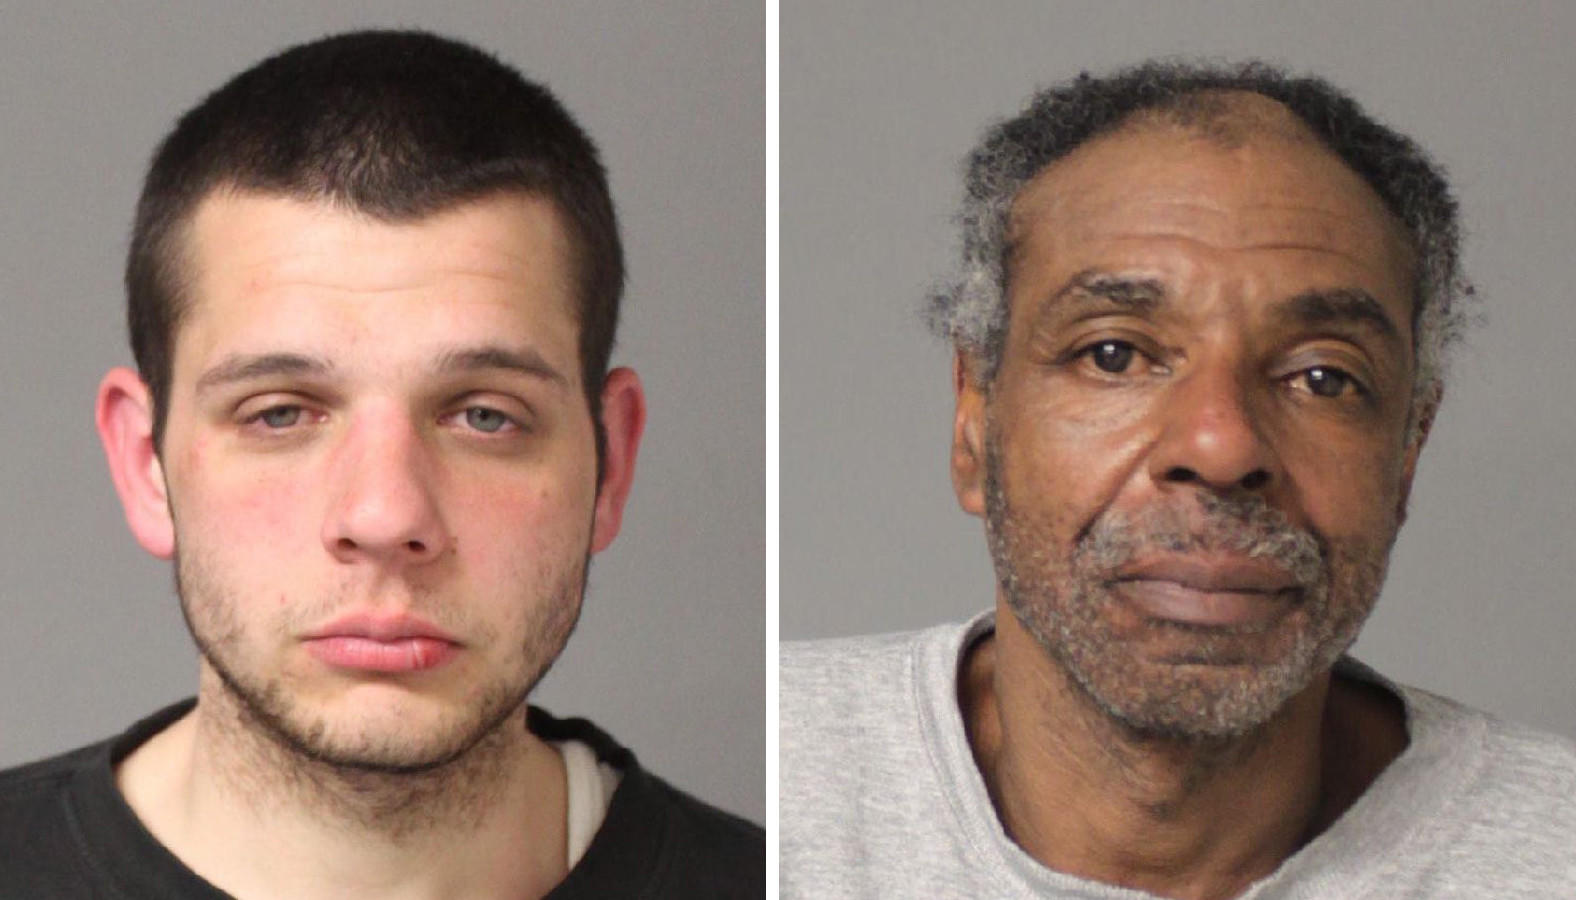 Anne Arundel County Police say Phillip Douglas Ponta, 24, left, and Elliott Johnson, 58, were arrested early Wednesday during a traffic stop and charged with various violations regarding possession of controlled dangerous substances.